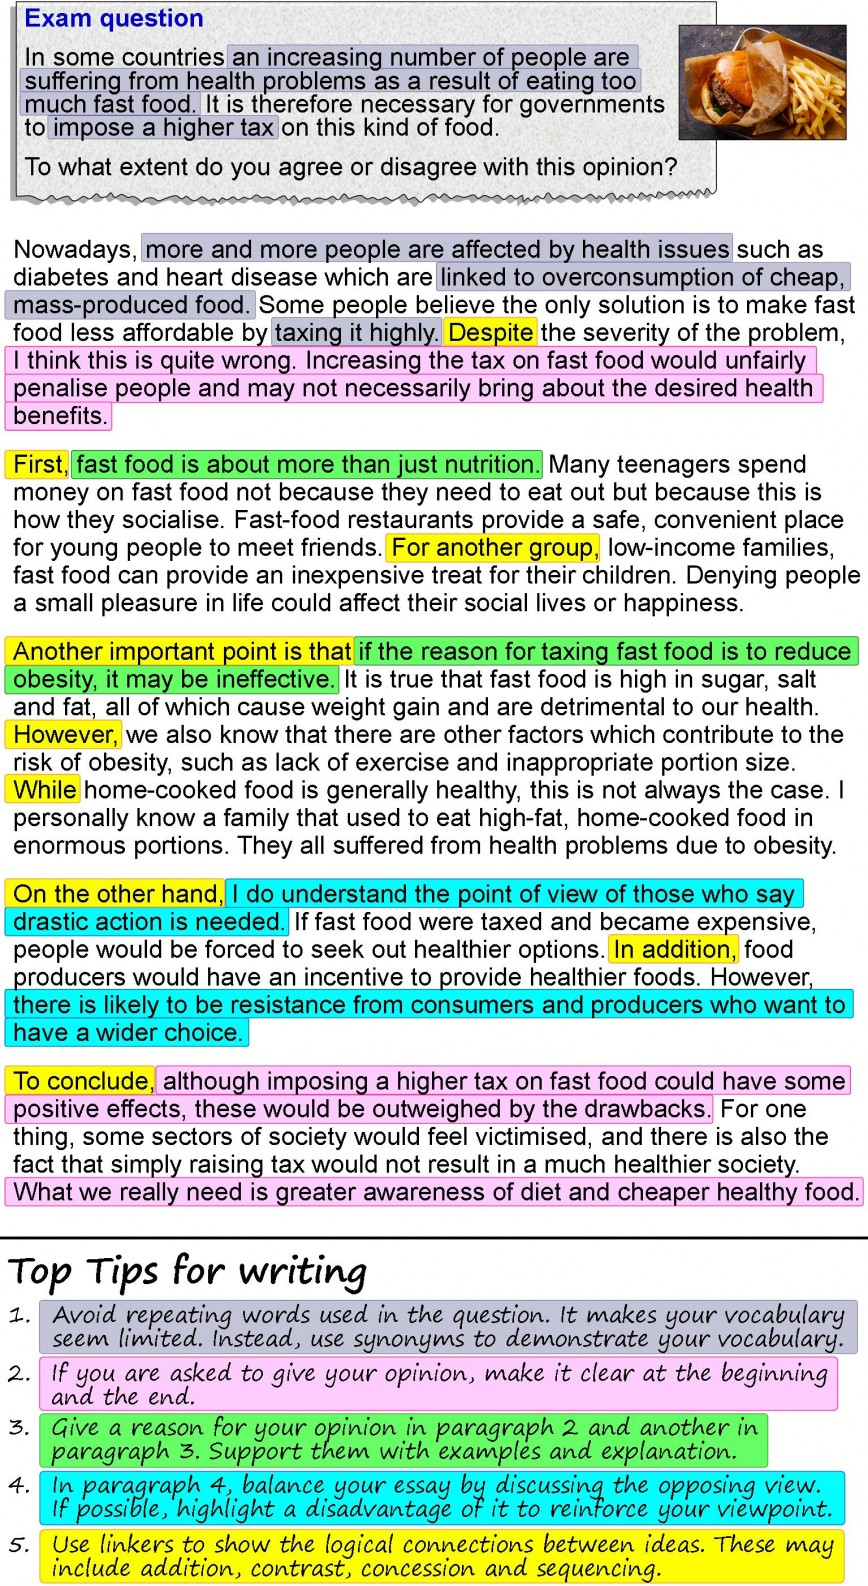 001 An Opinion Essay About Fast 4 Example Stunning Food Nation Outline Titles Introduction 868